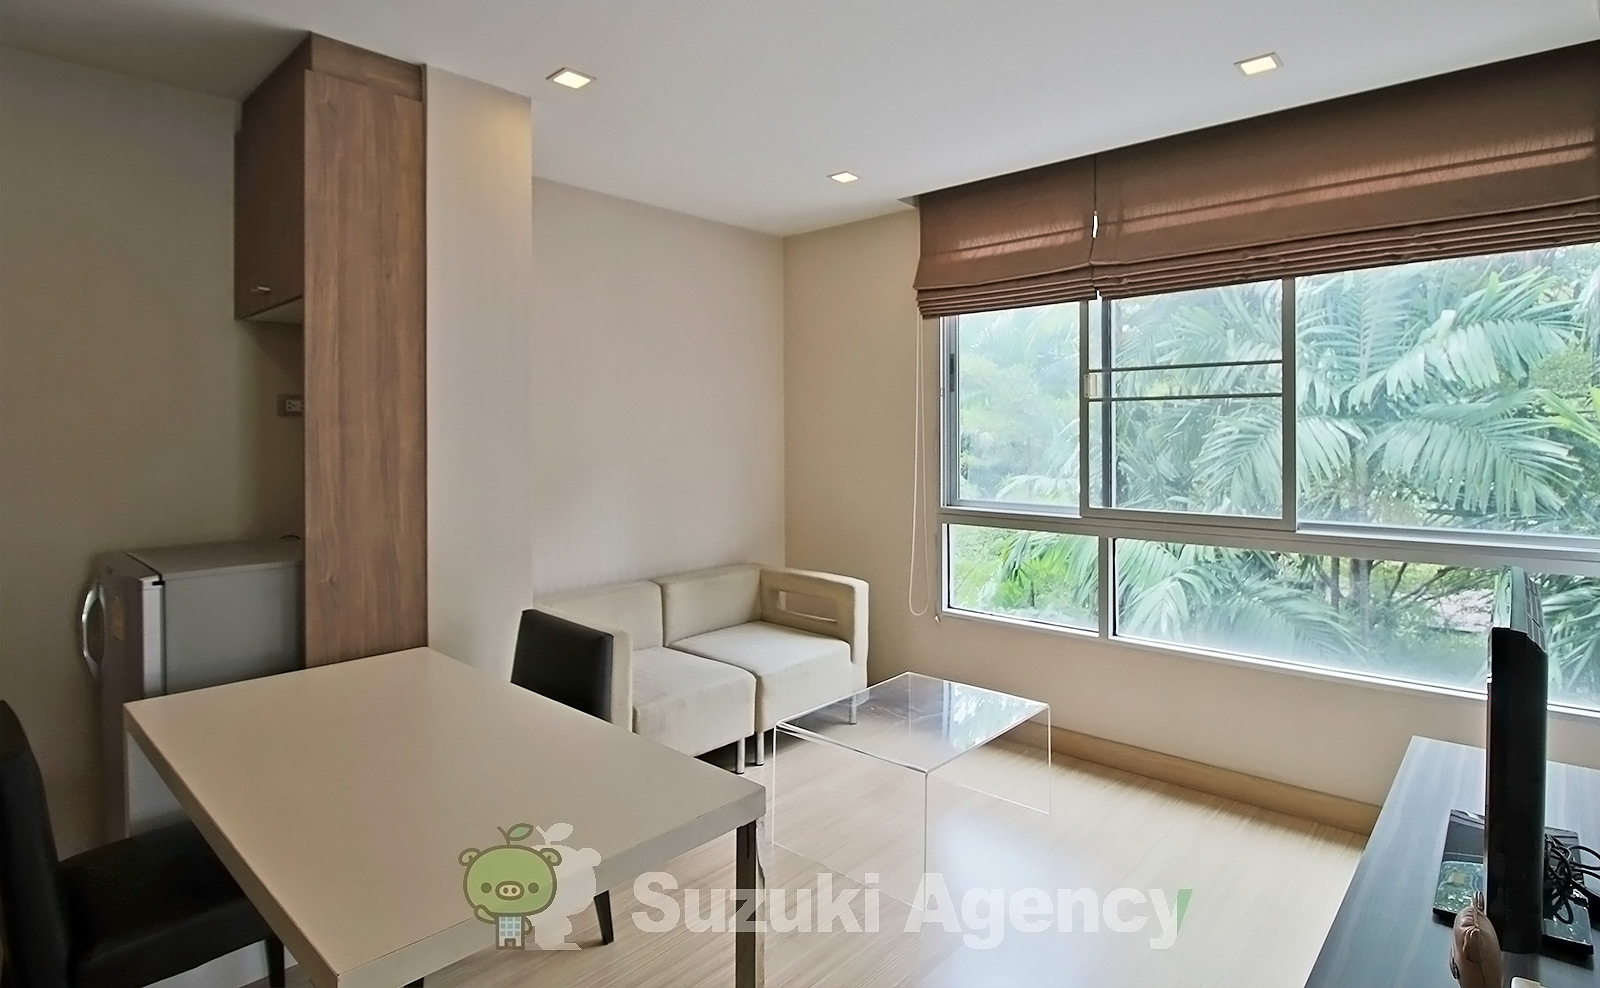 Tree Condo Sukhumvit 42:2Bed Room Photos No.3